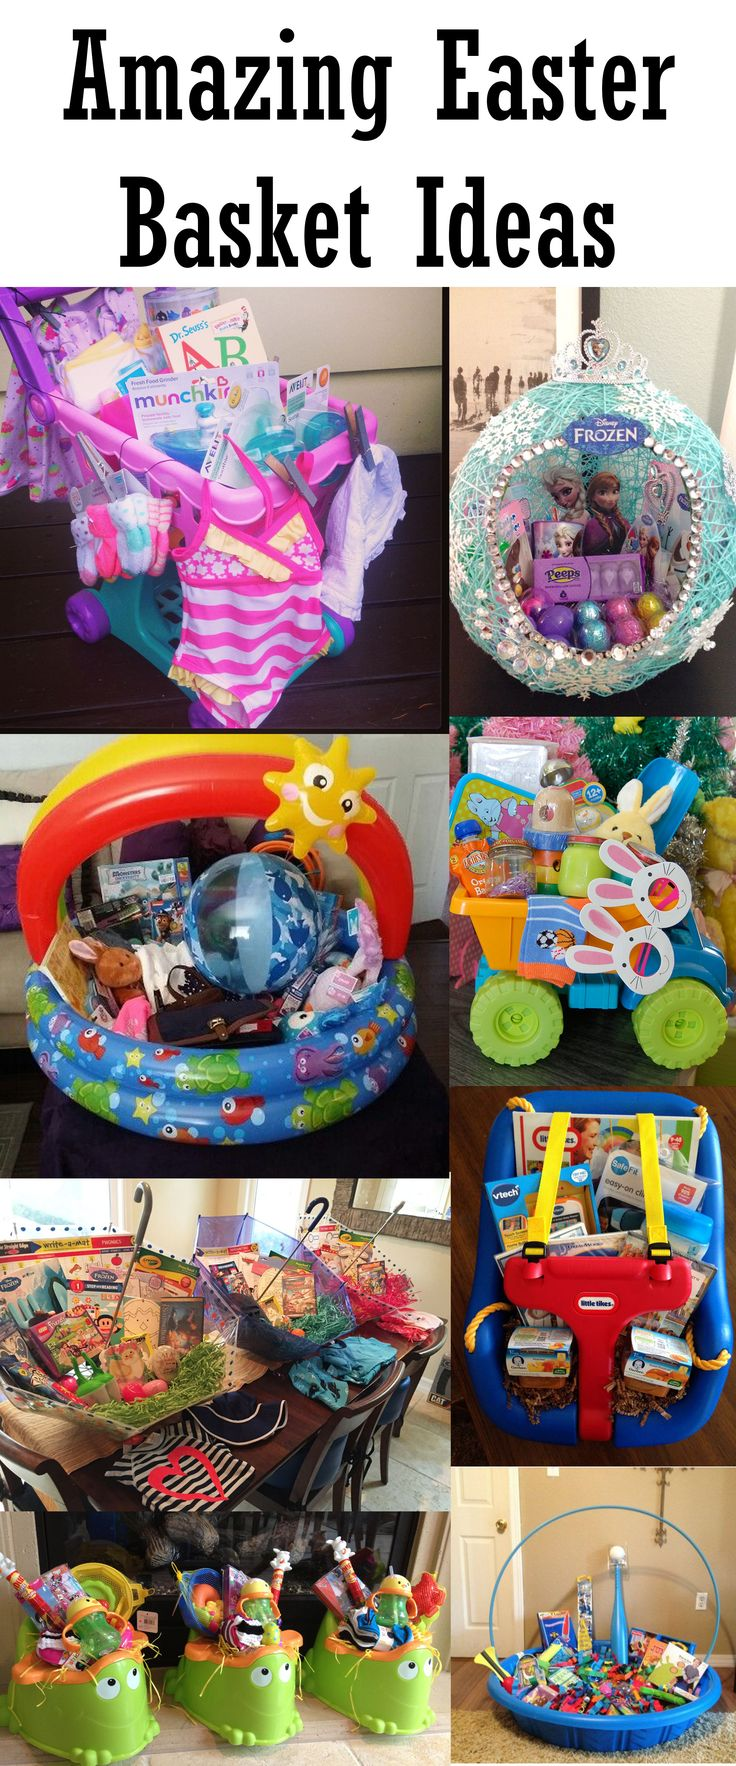 Best 25 easter baskets ideas on pinterest easter easter amazing easter basket ideas 1 negle Choice Image